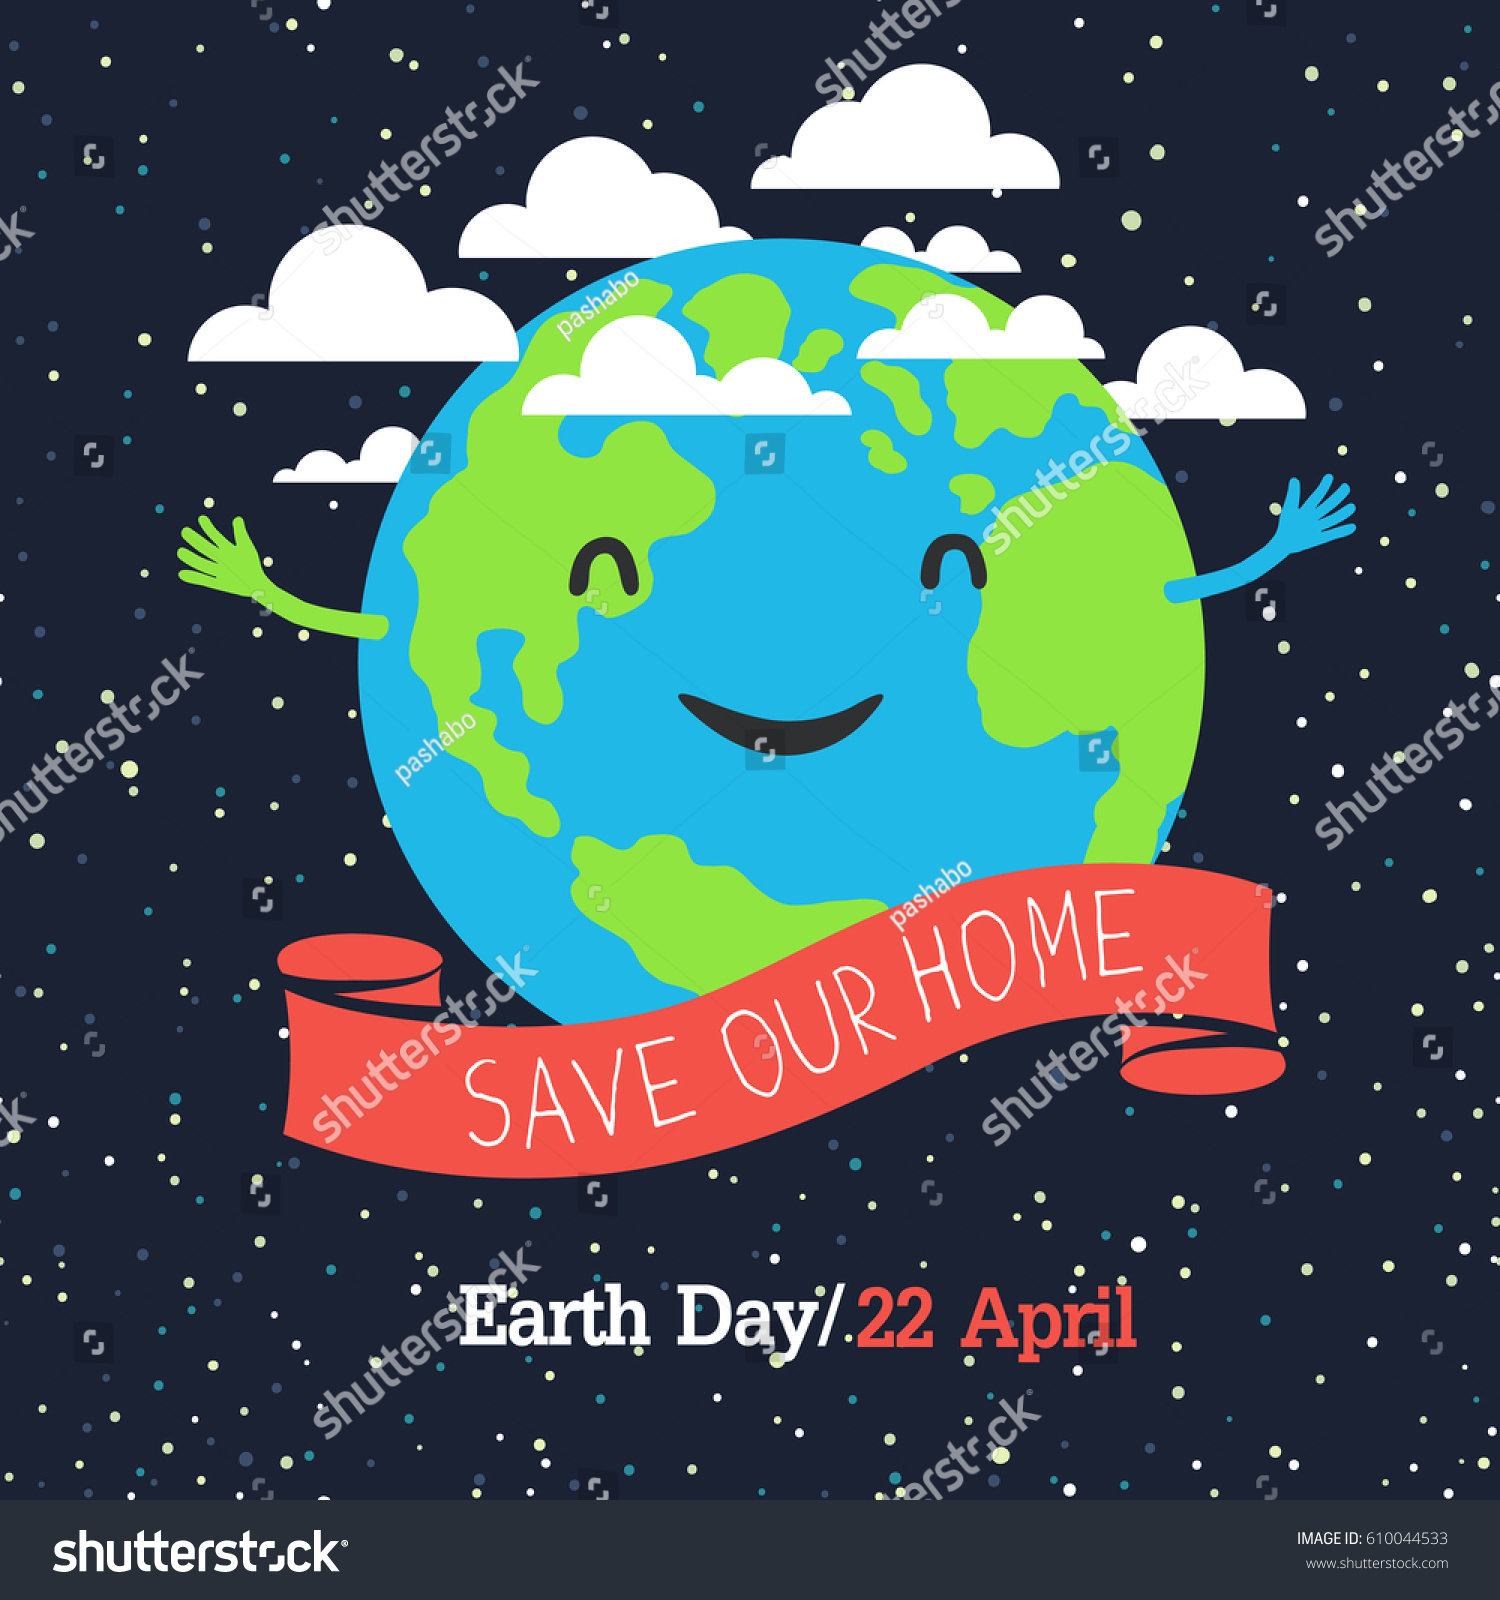 Earth day poster cartoon style planet stock vector for Outer space poster design